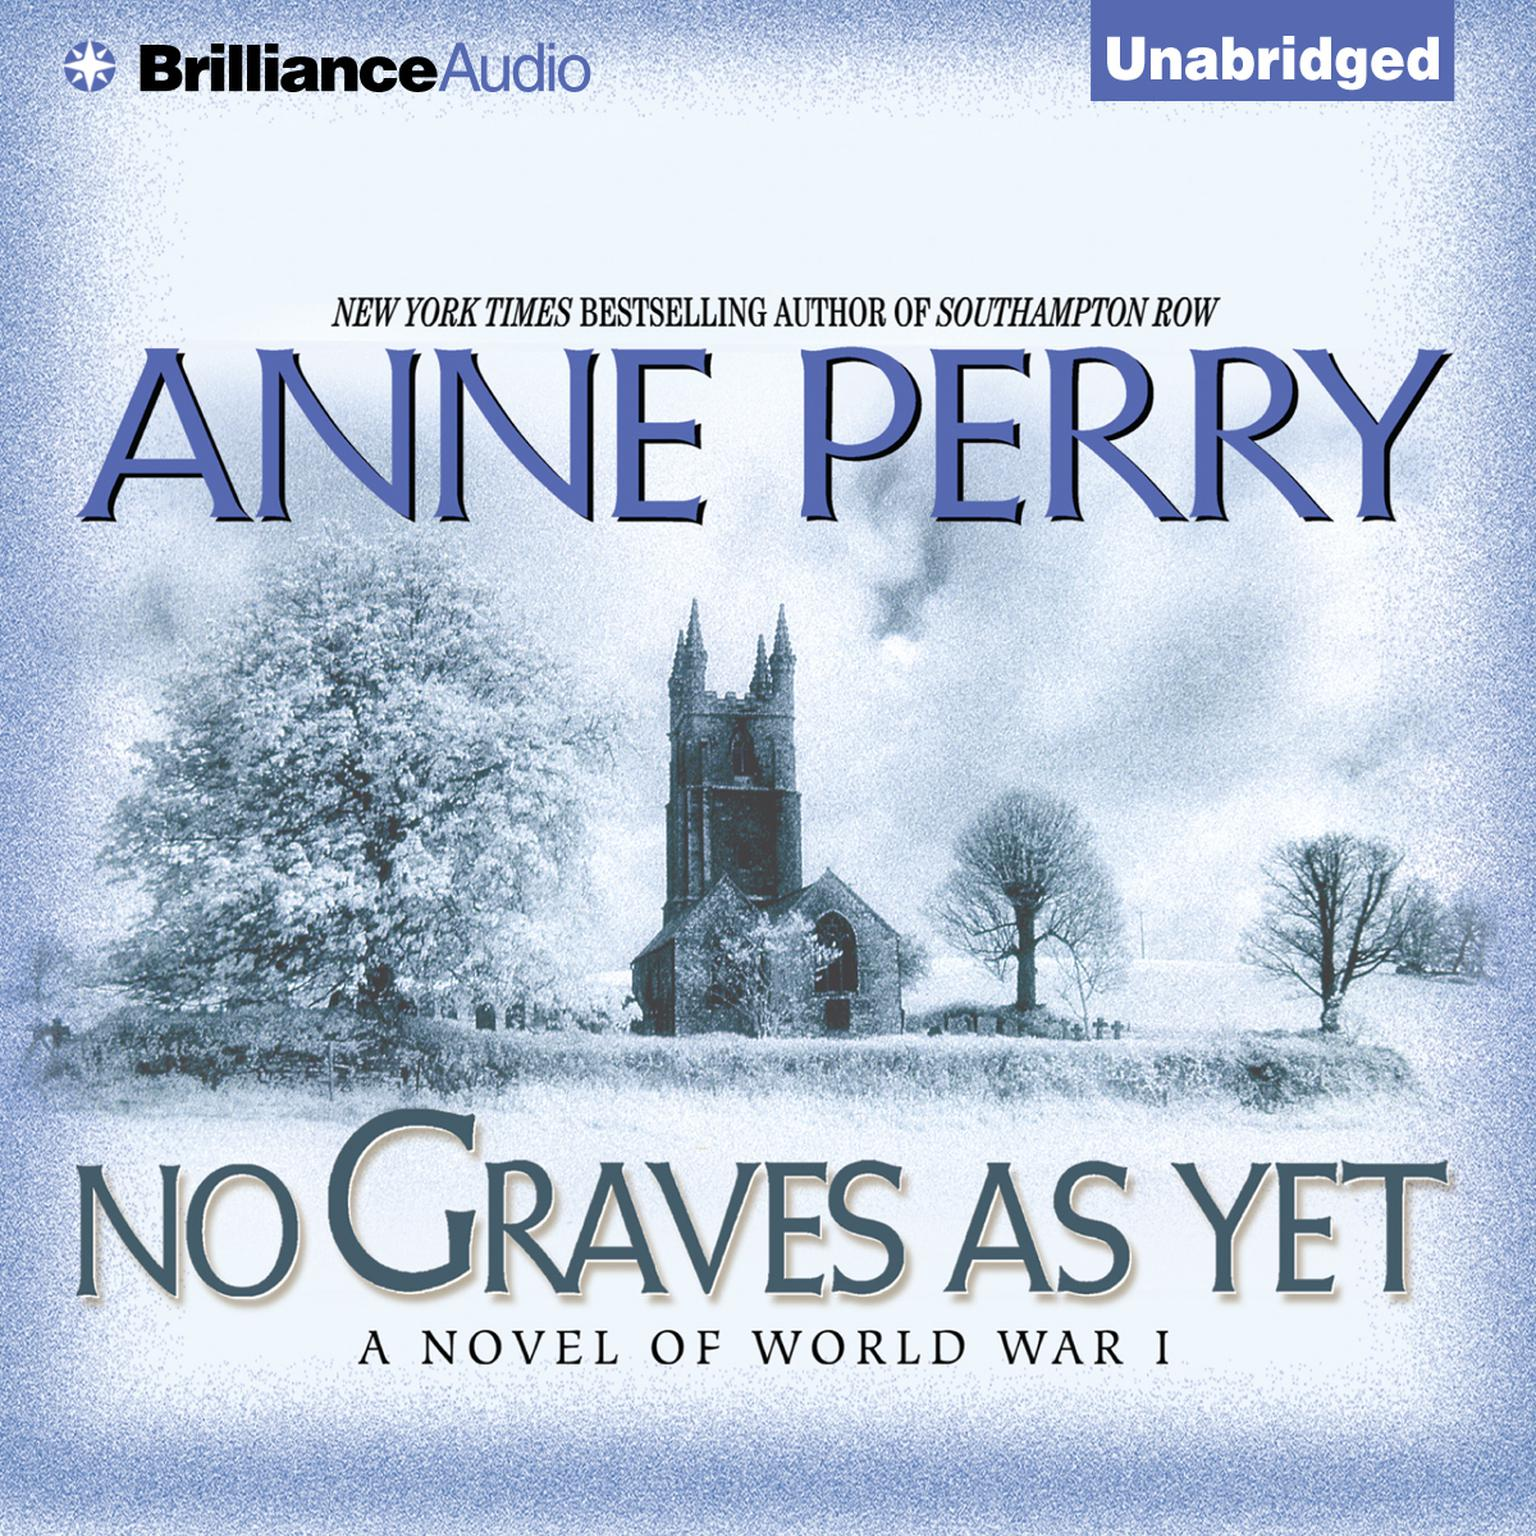 Printable No Graves As Yet: A Novel of World War One Audiobook Cover Art